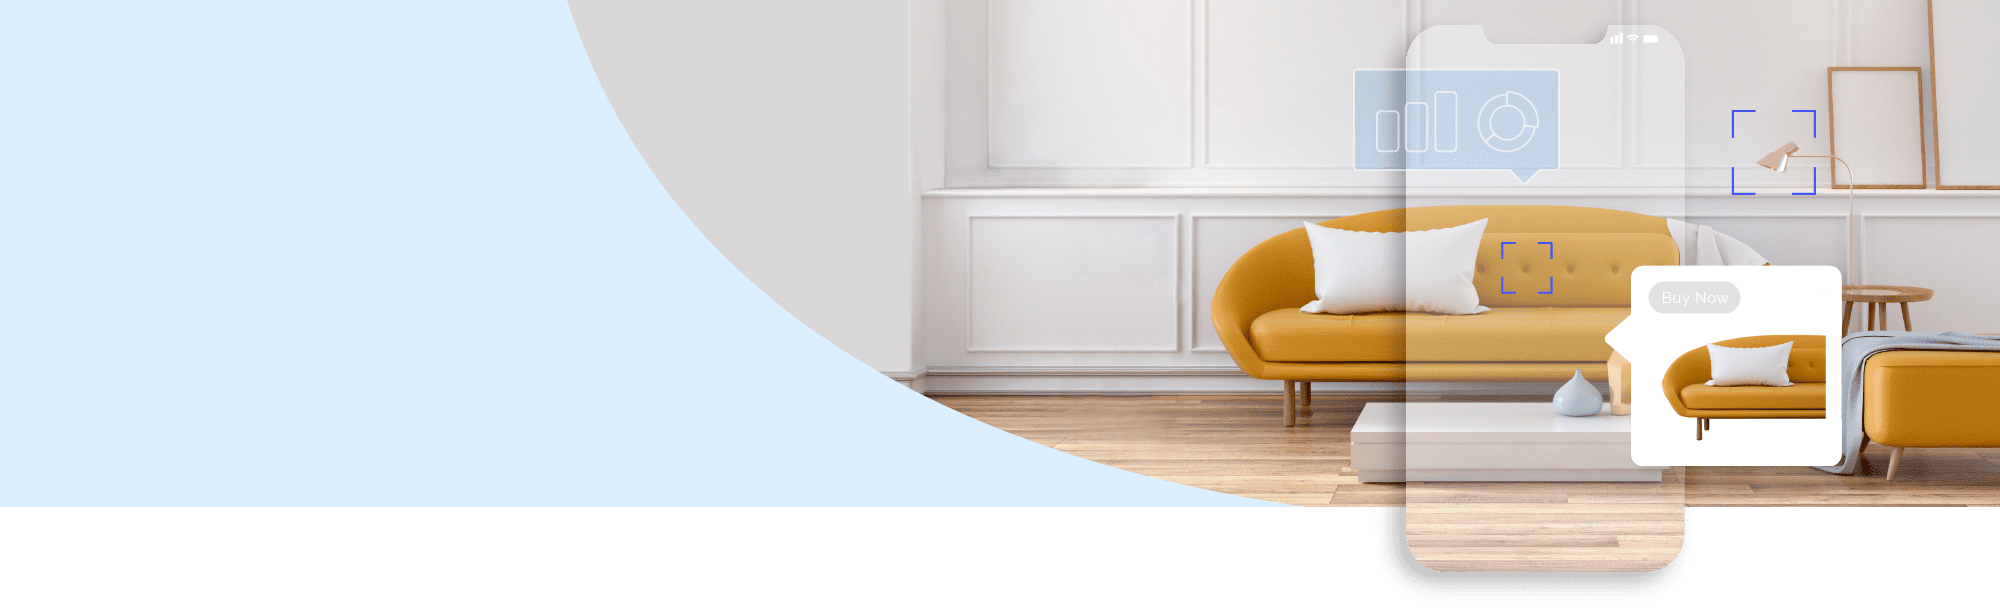 Header image of a fashionable living area with a modern orange sofa and an overlay in the shape of a mobile phone